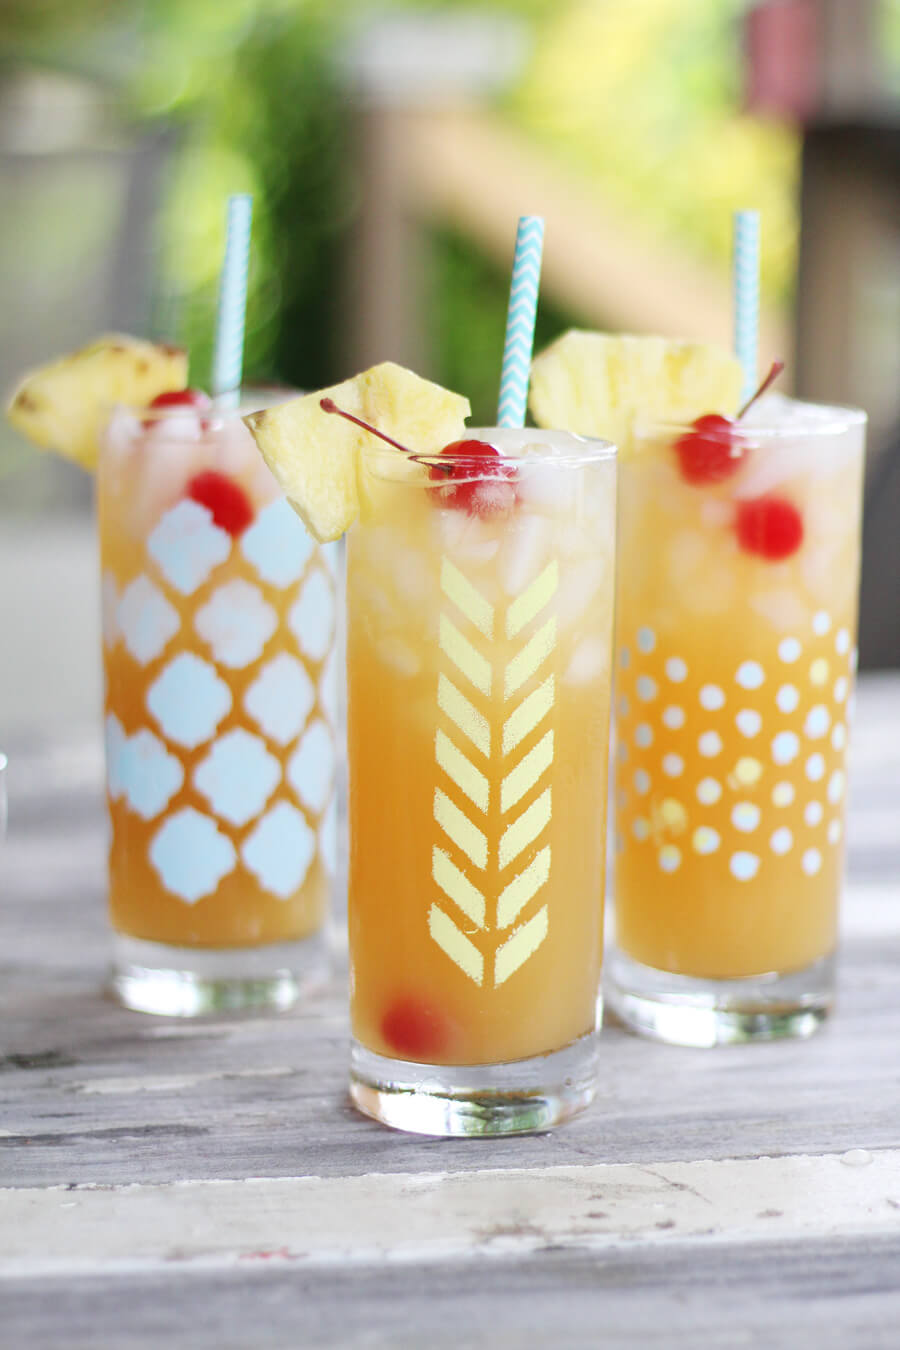 Three cocktail glasses with refreshing tropical lemonade